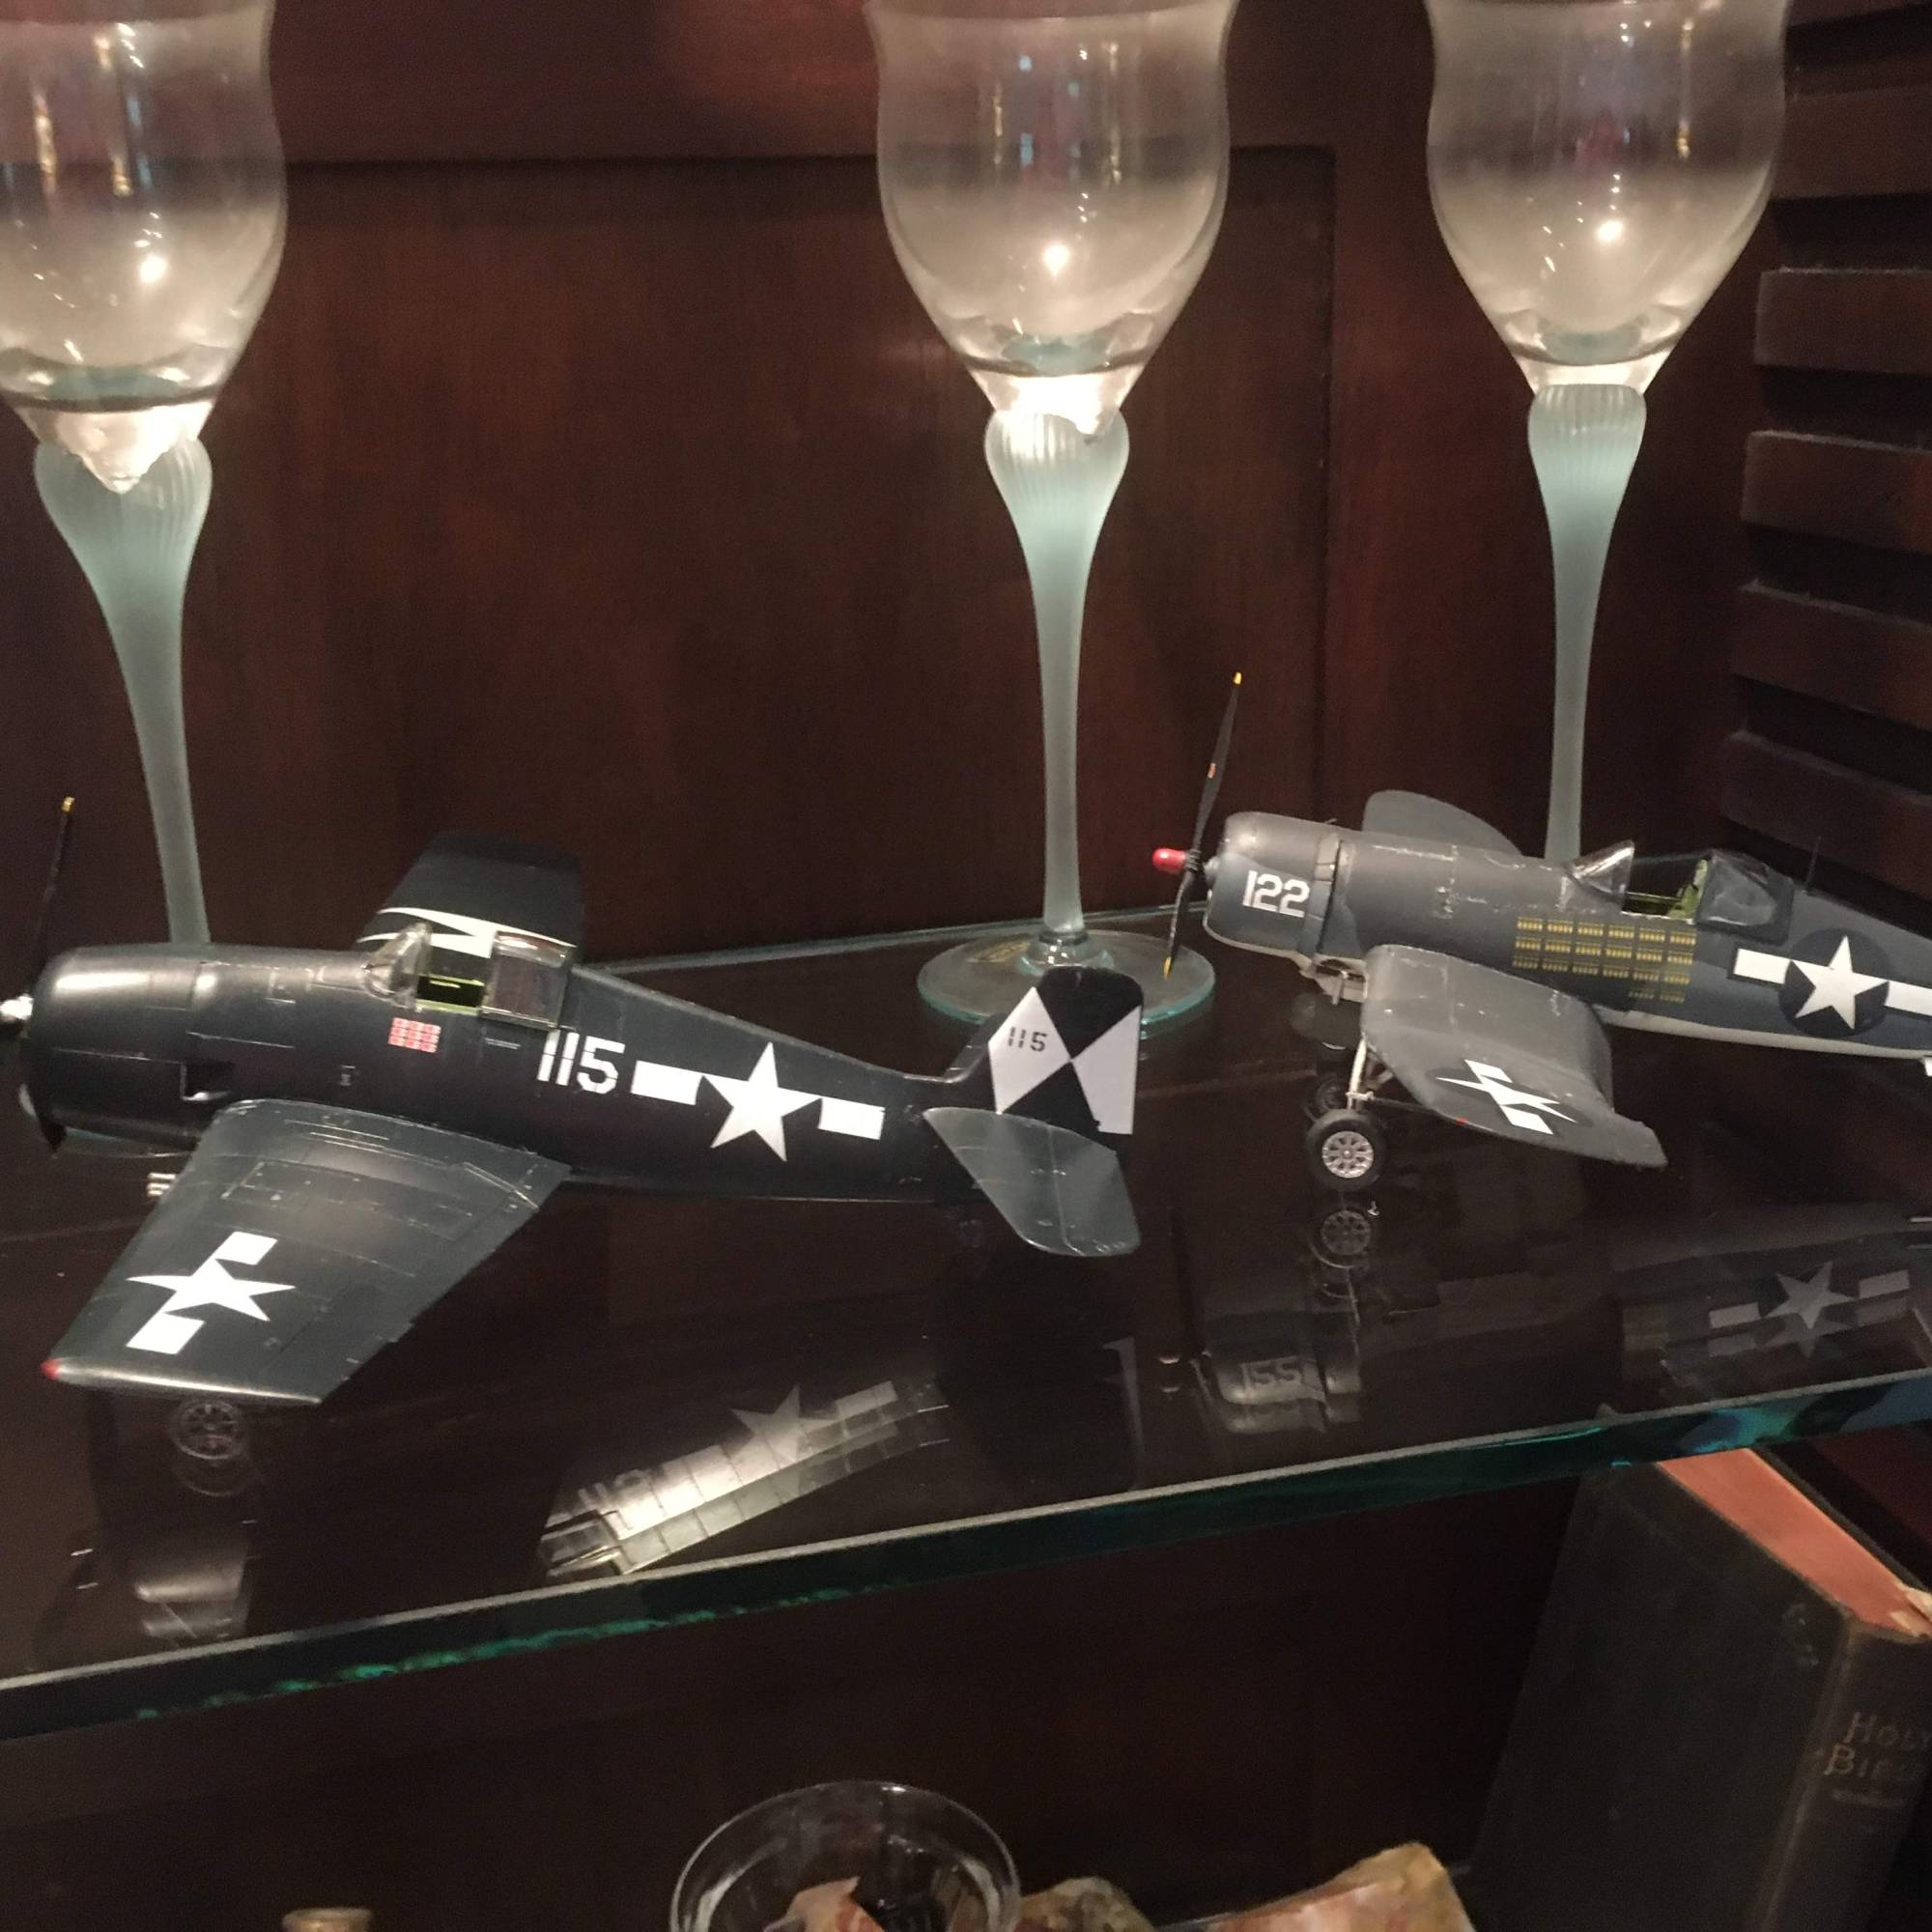 two model airplanes